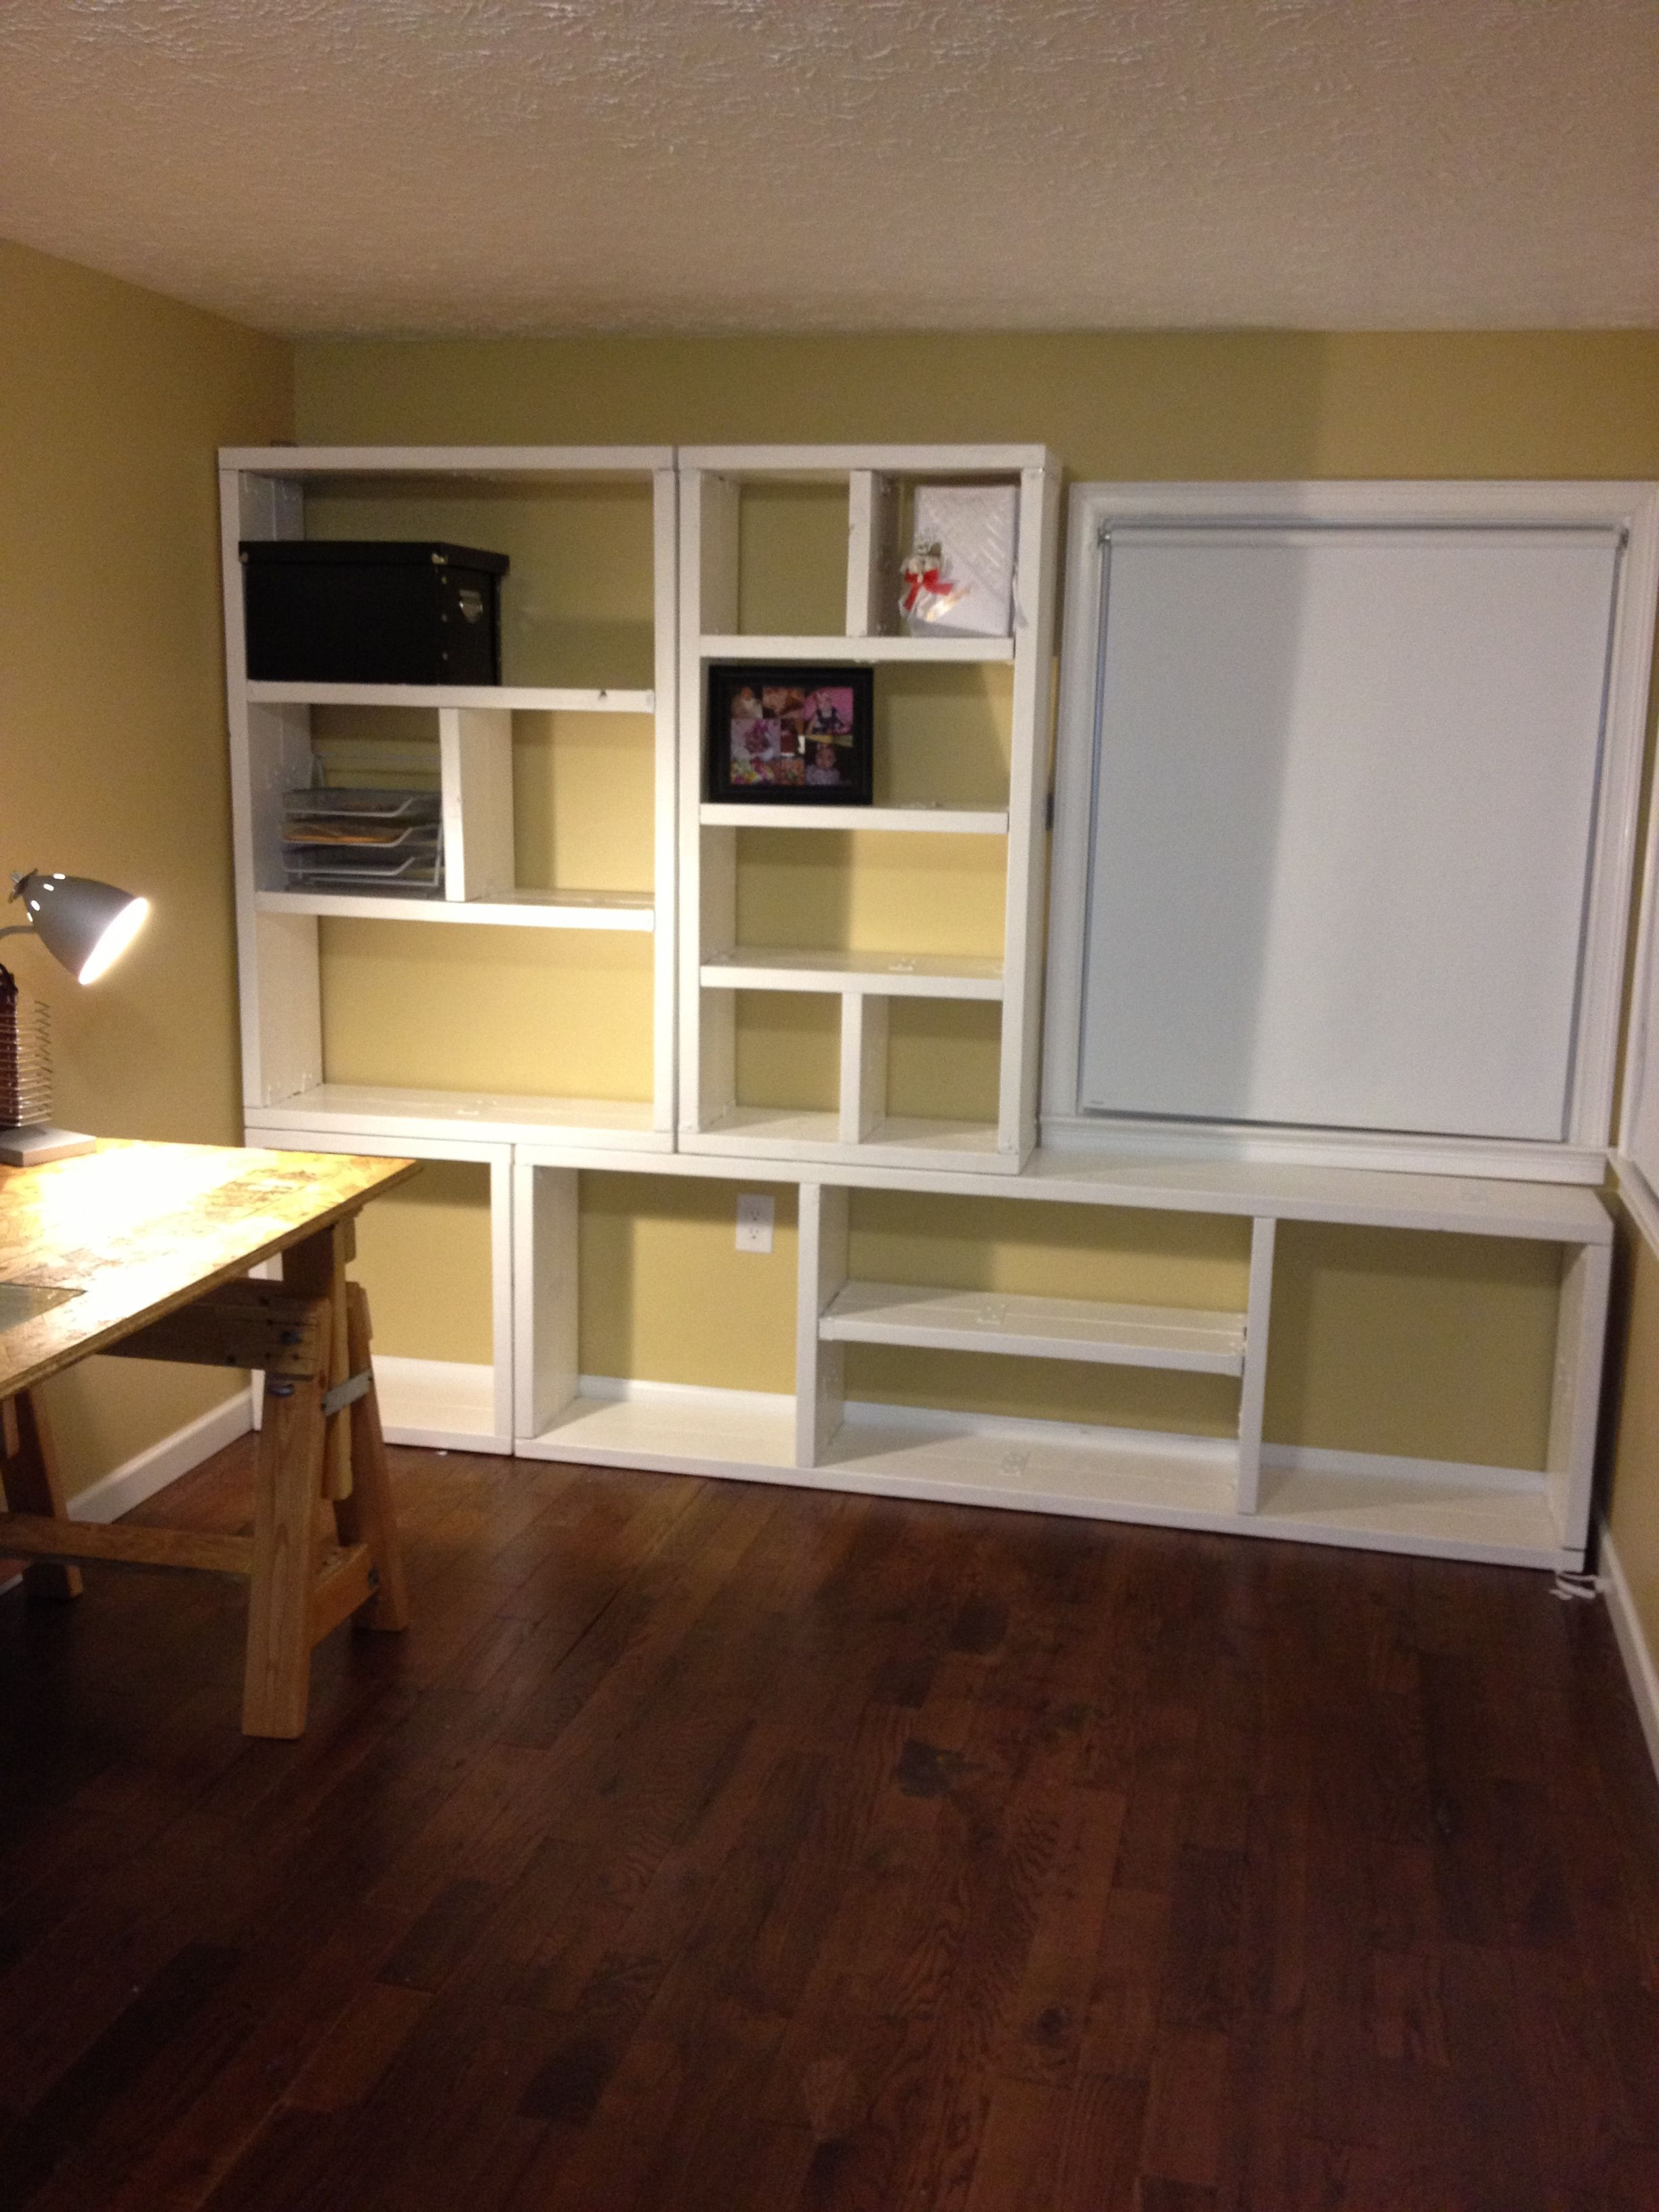 Shelving unit for under $150 DIY Wood $100 2x8 put side by side Decking straps & Shelving unit for under $150 DIY Wood $100 2x8 put side by side ...